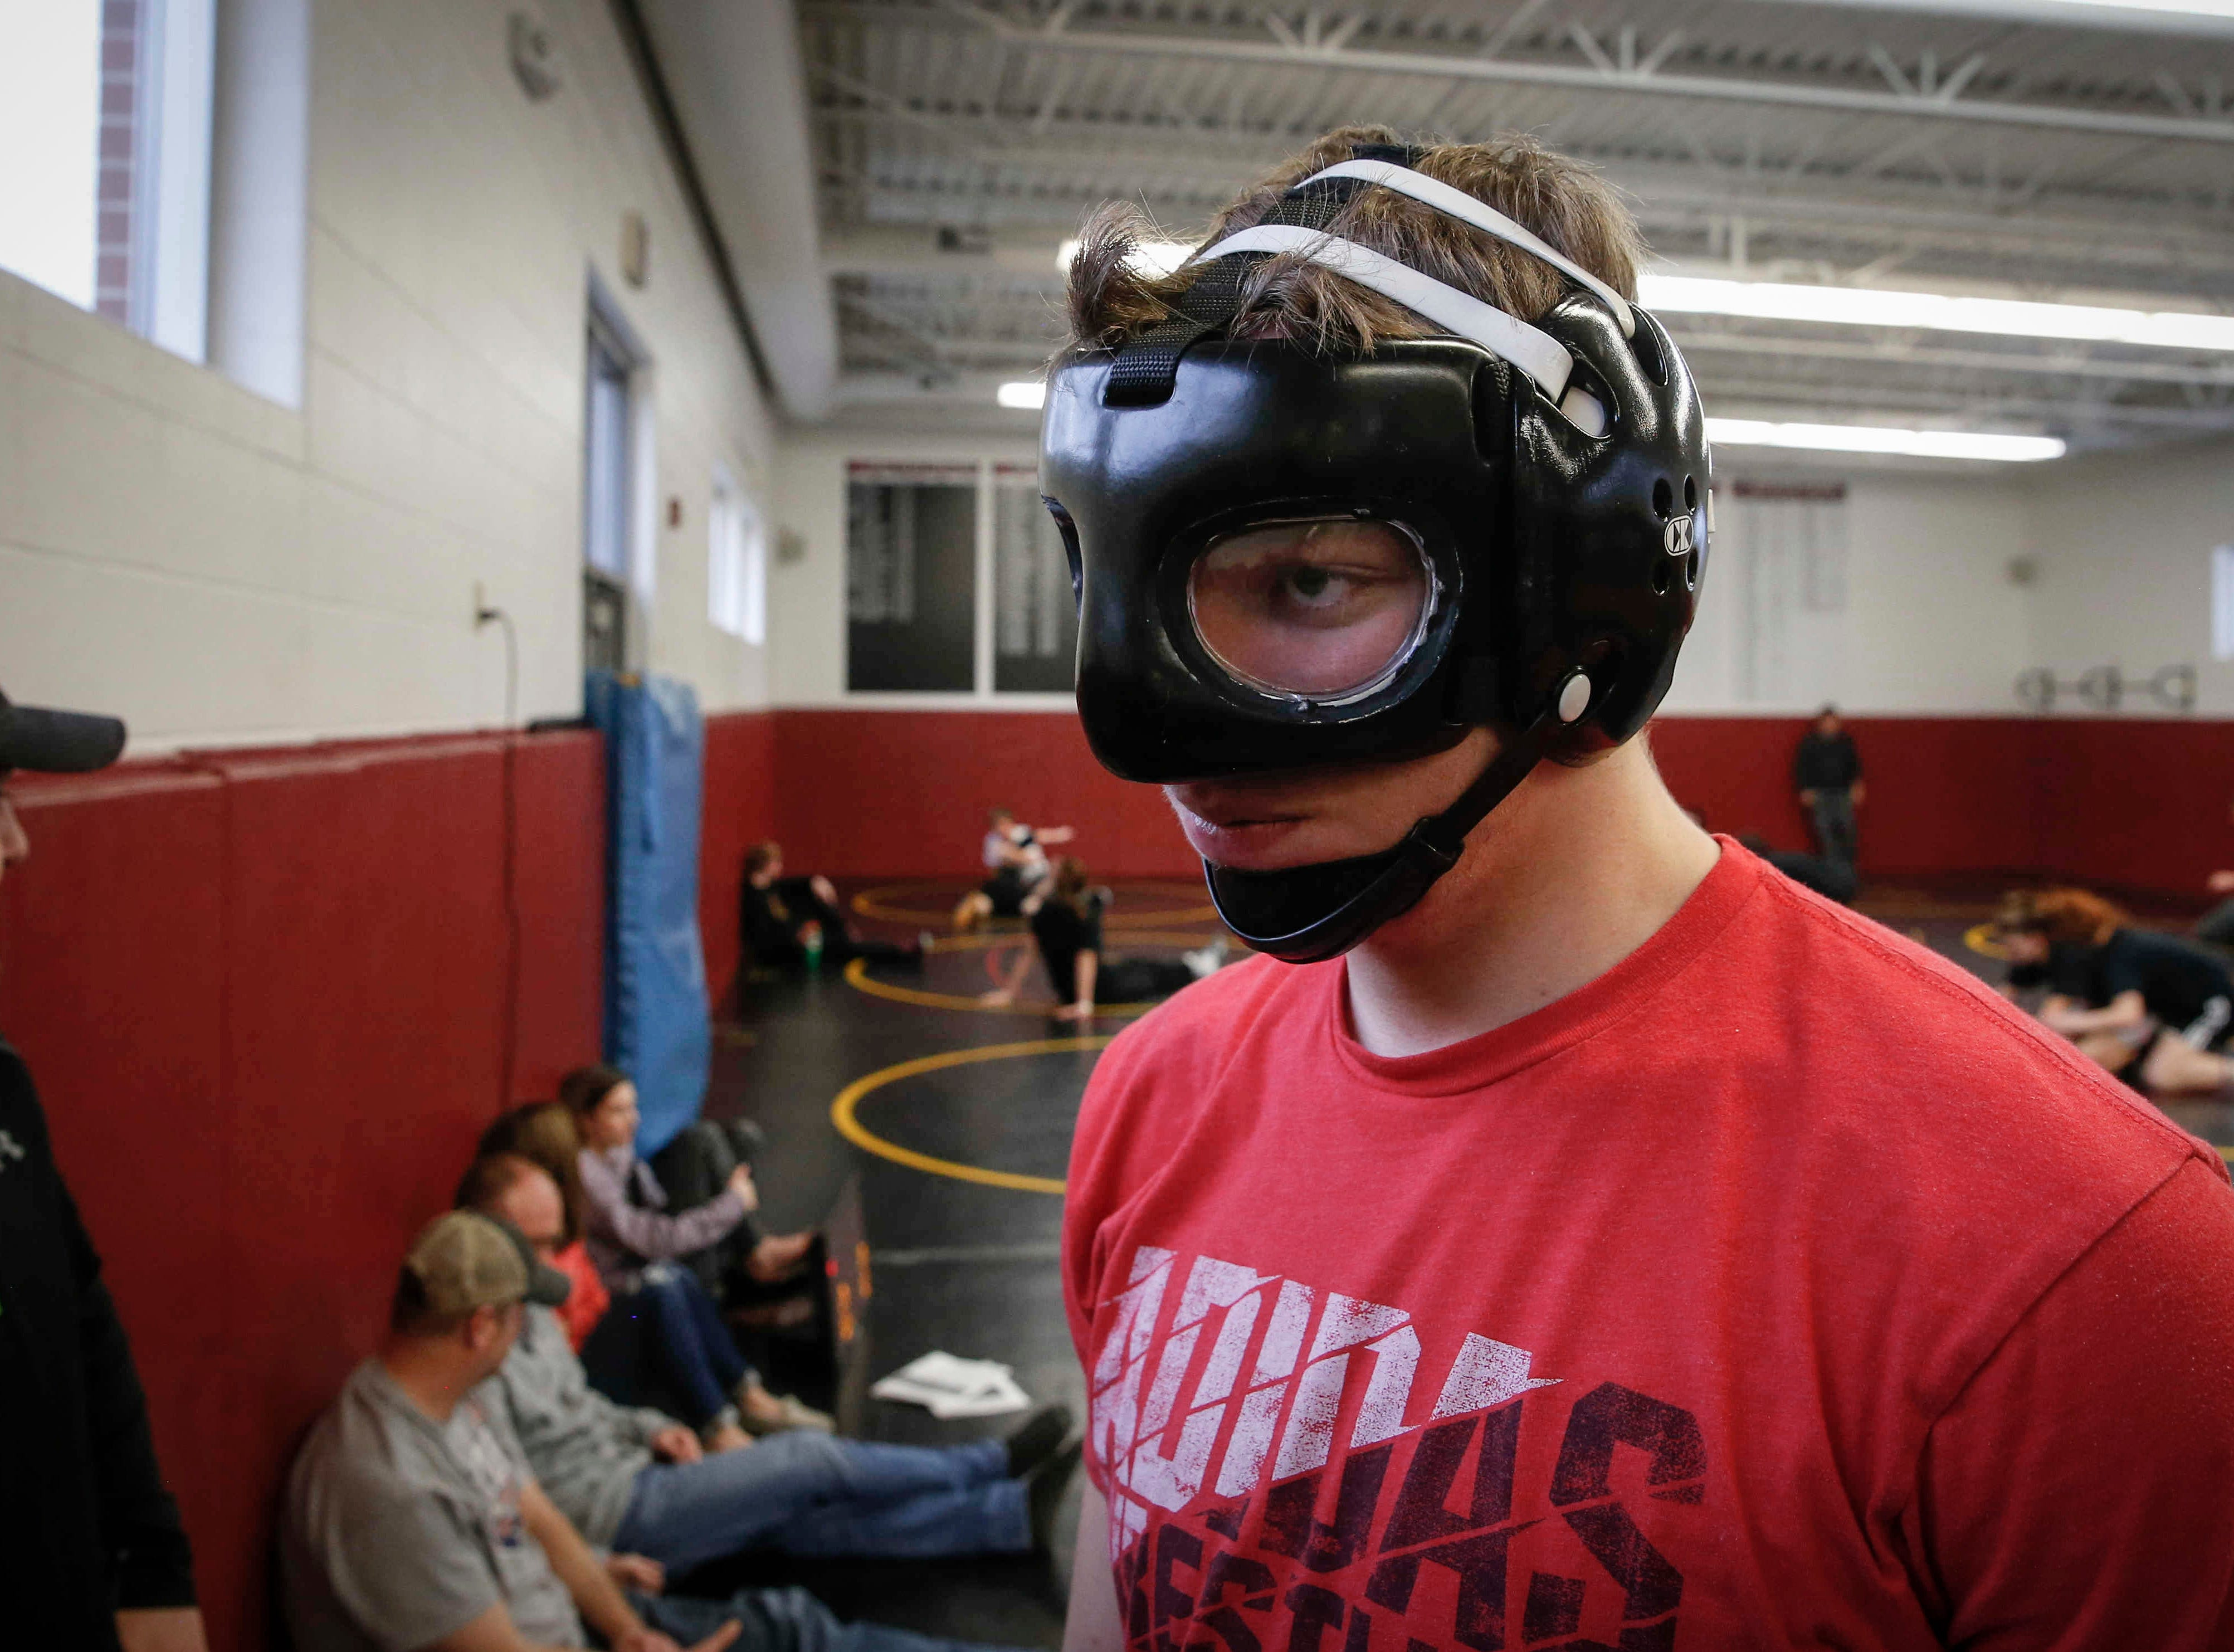 Denver sophomore Cam Krueger wears a protective mask before running drills during wrestling practice at Denver High School in Denver on Tuesday, Jan. 15, 2019. Krueger hasn't let the fact that he is legally blind step in the way of his passion for wrestling.